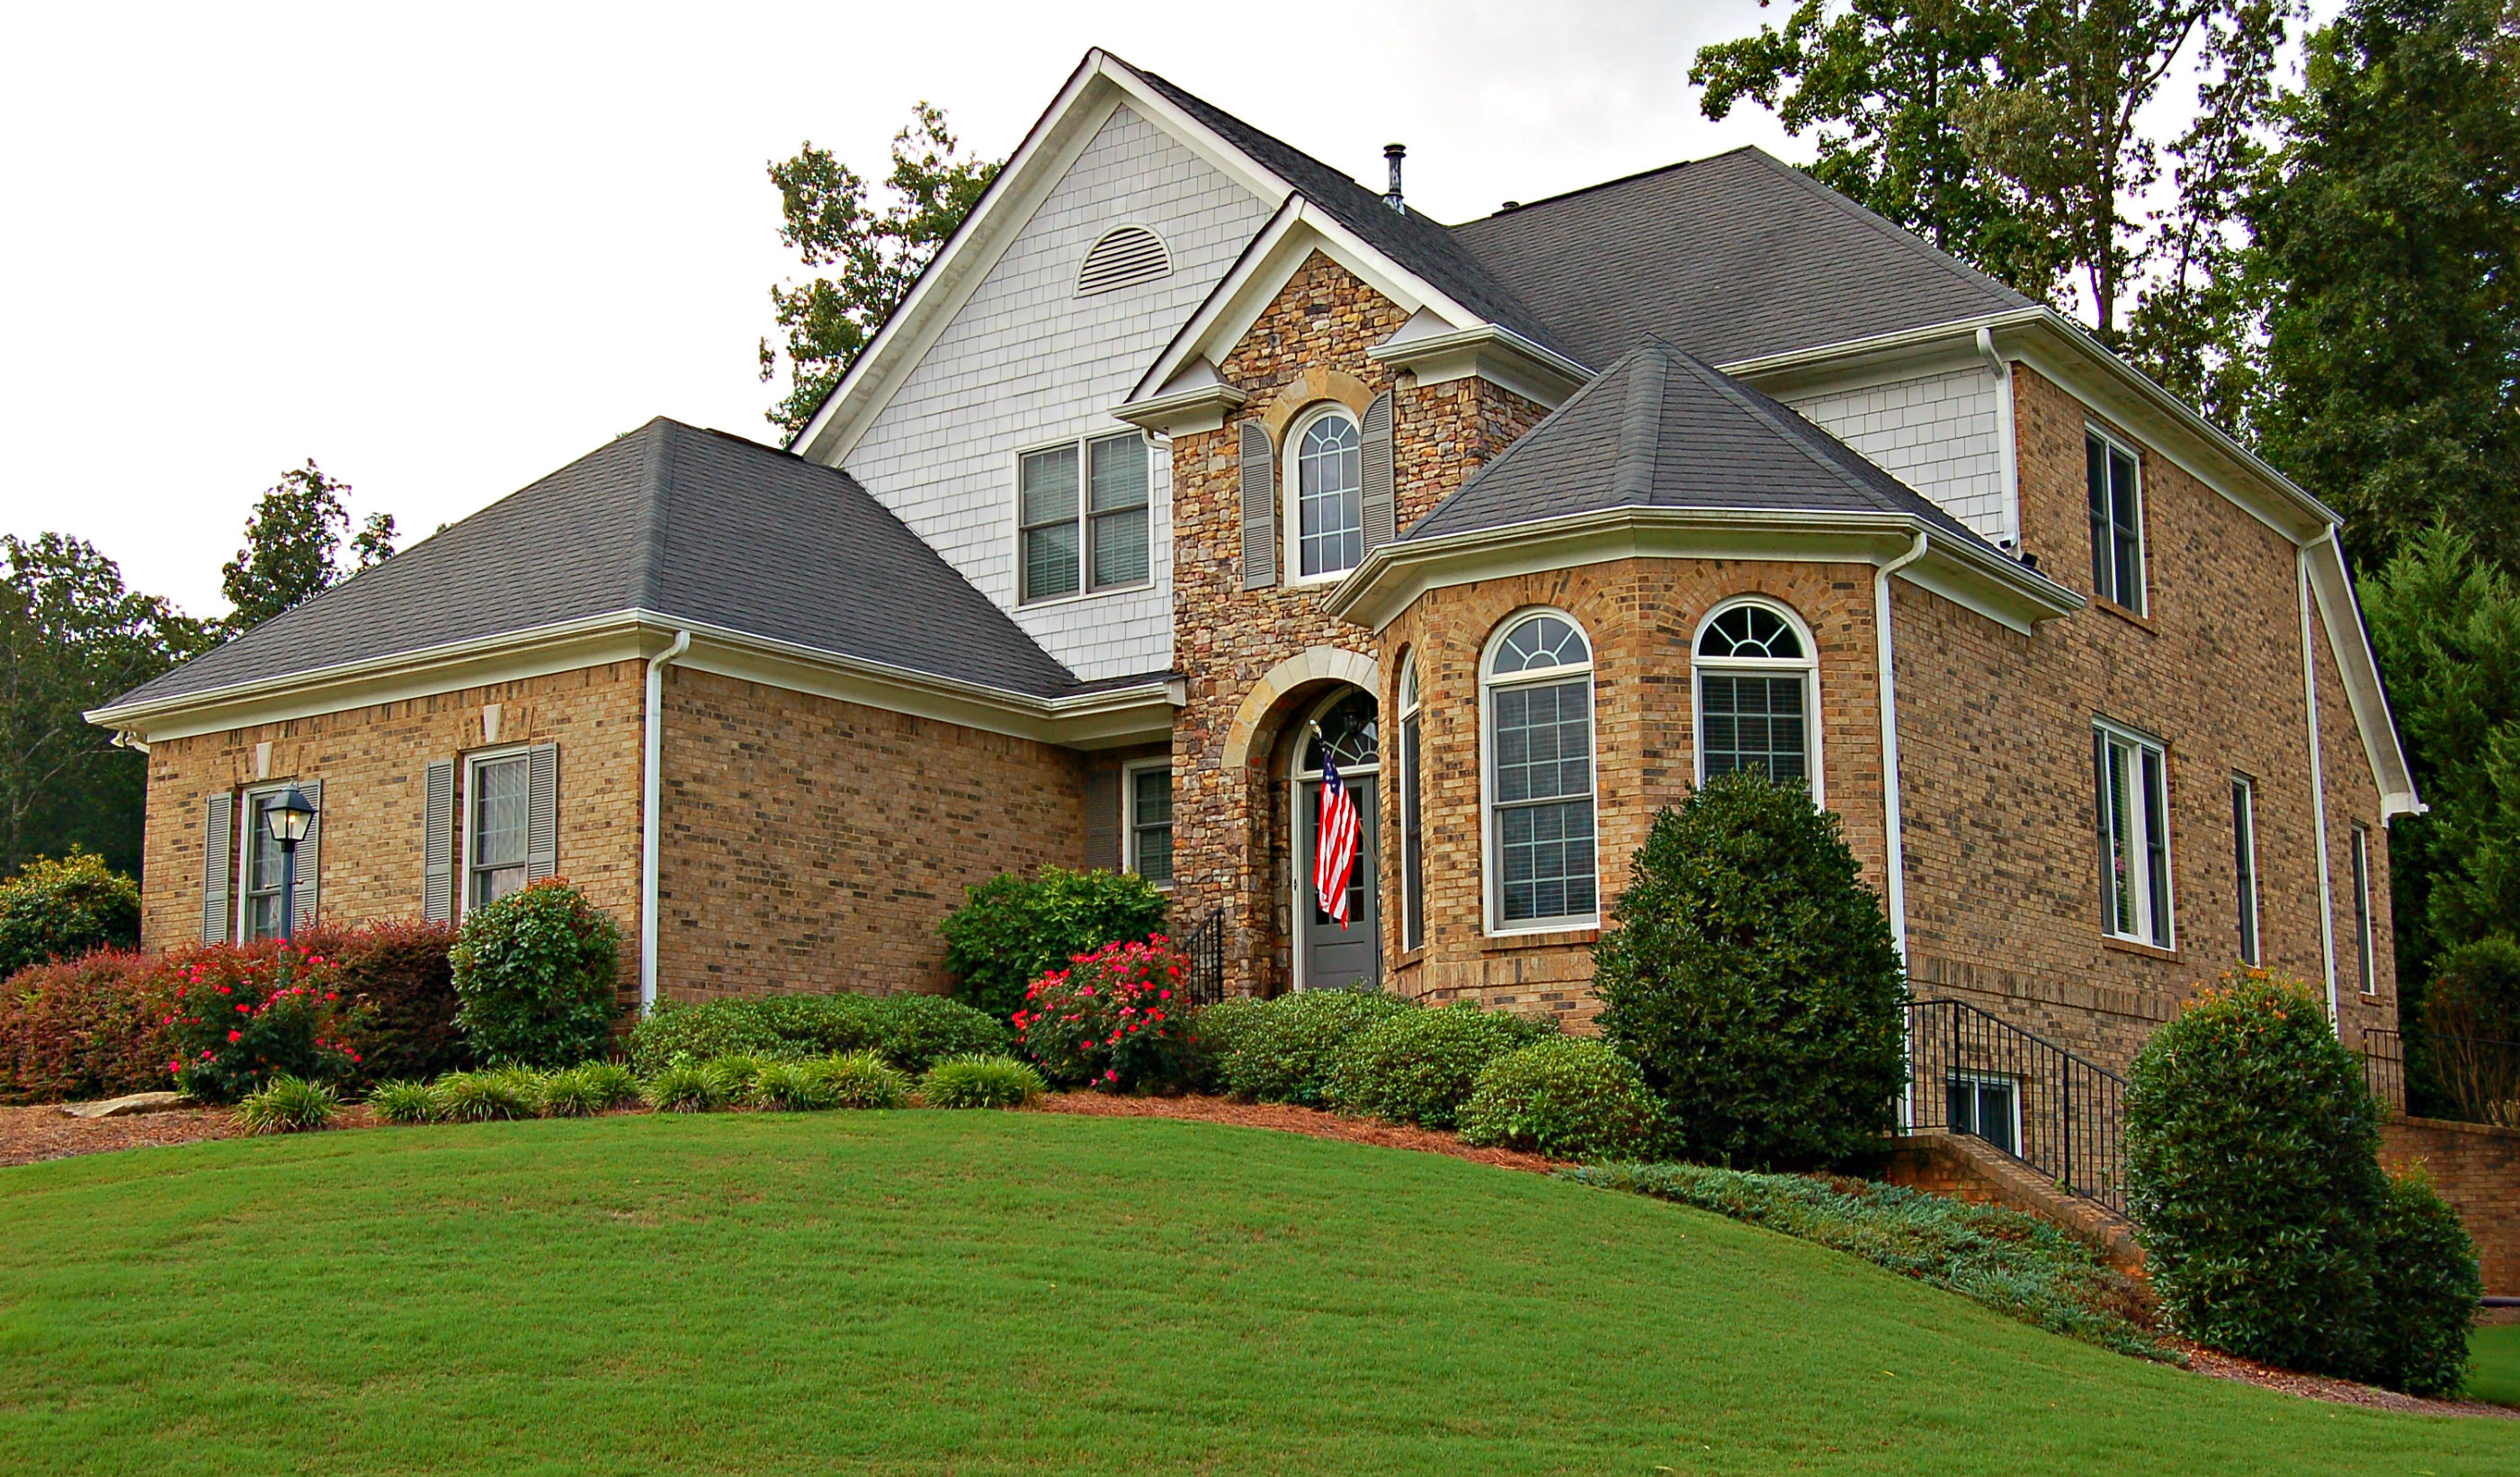 5310 Regal Court Home For Sale In Suwanee Ga 30024